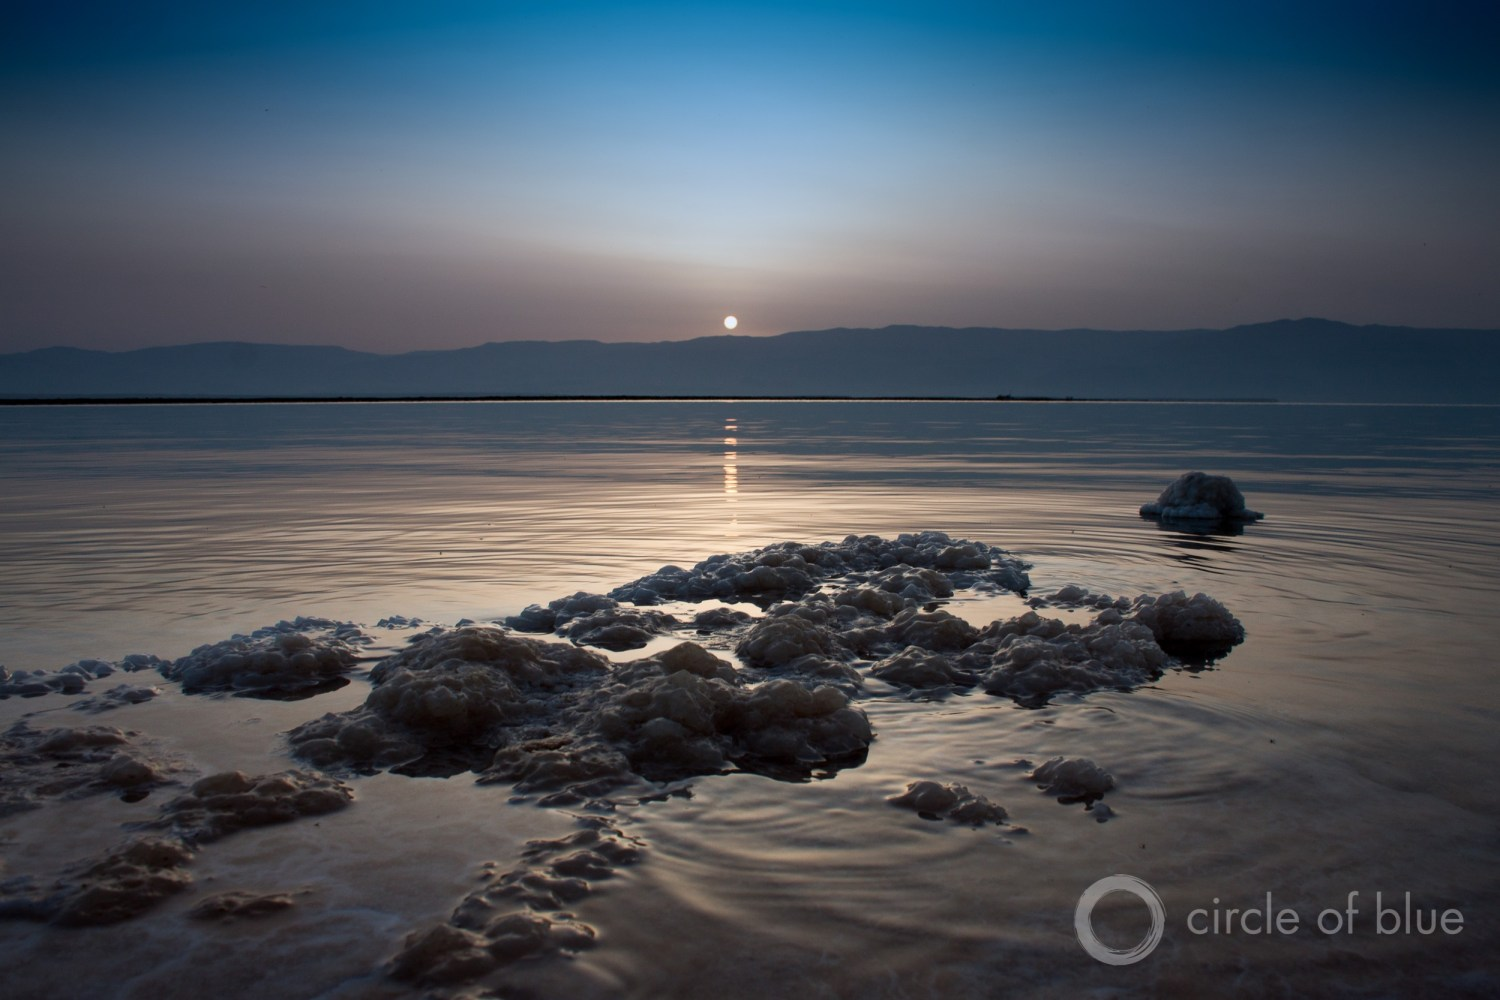 Sunrise over the Dead Sea is veiled by haze. Halting the decline of the shrinking sea is a top water policy question in the Jordan River Basin. Photo © Brett Walton / Circle of Blue